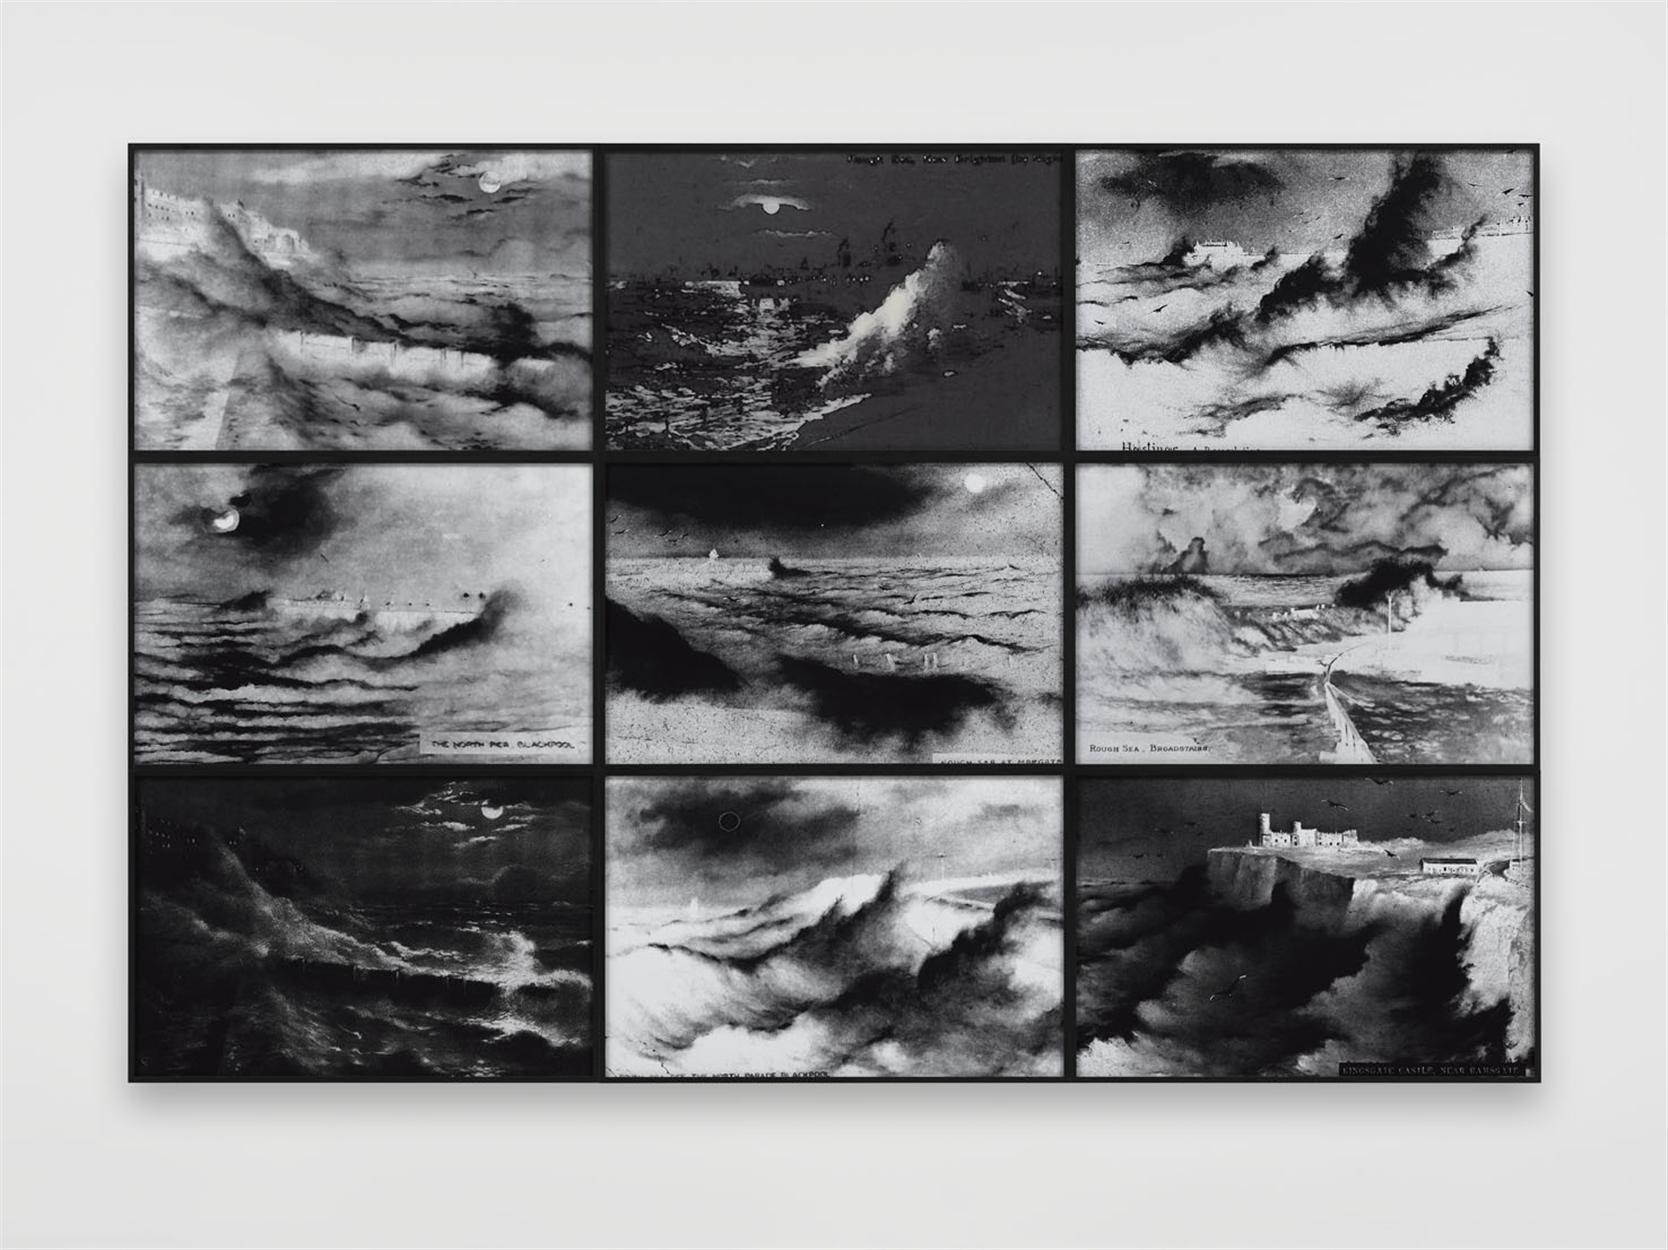 Susan Hiller, Rough Moonlit Nights, 2015 (Courtesy Lisson Gallery)